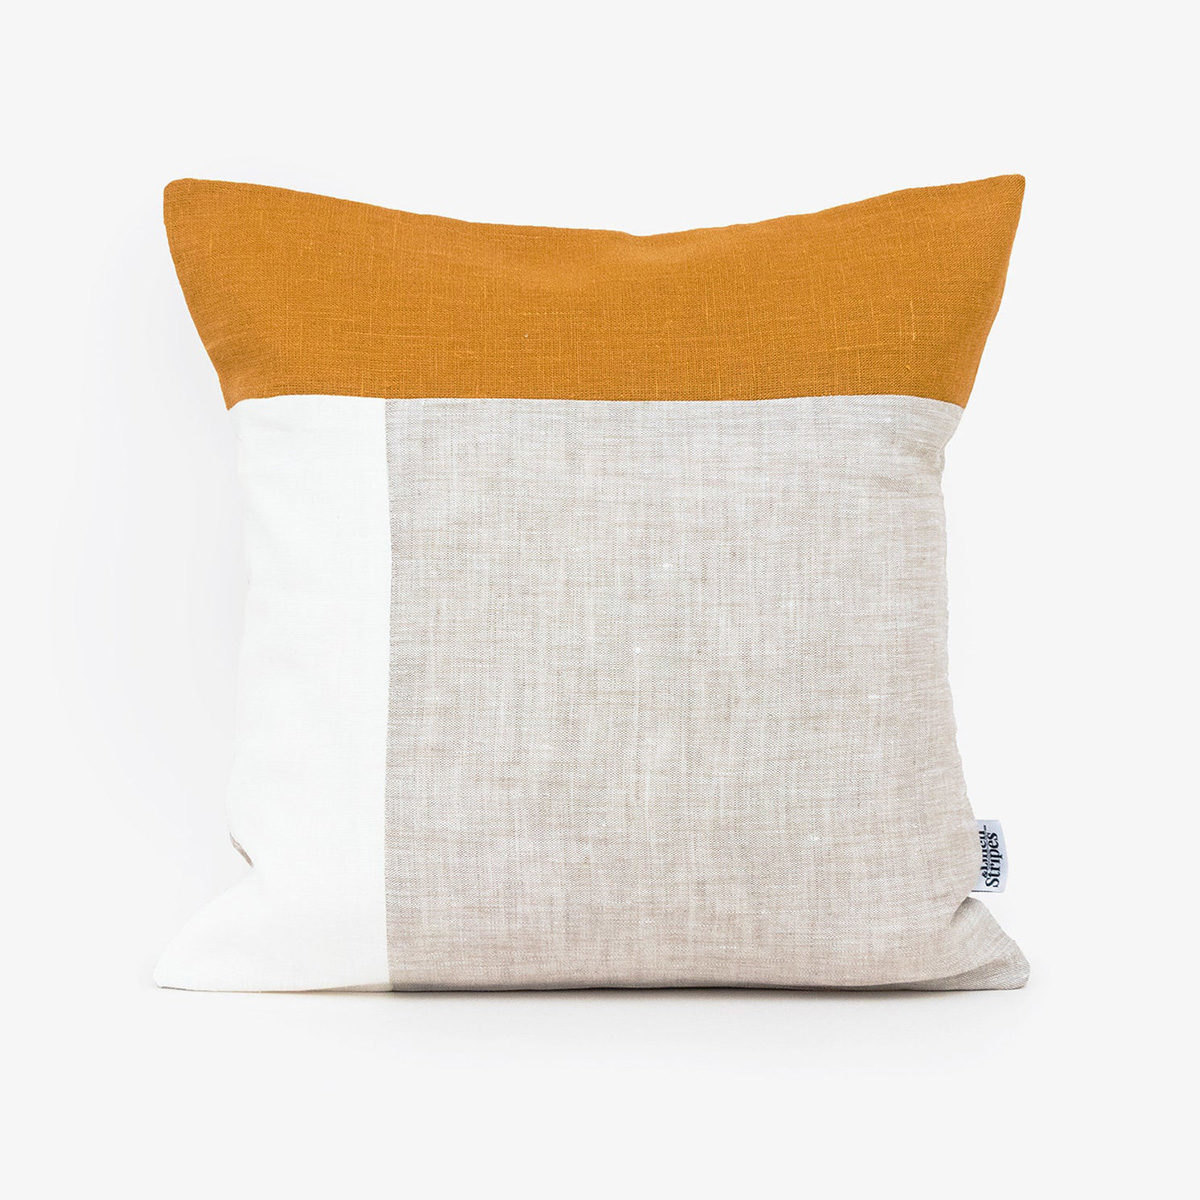 Colorblocked pillow from Etsy